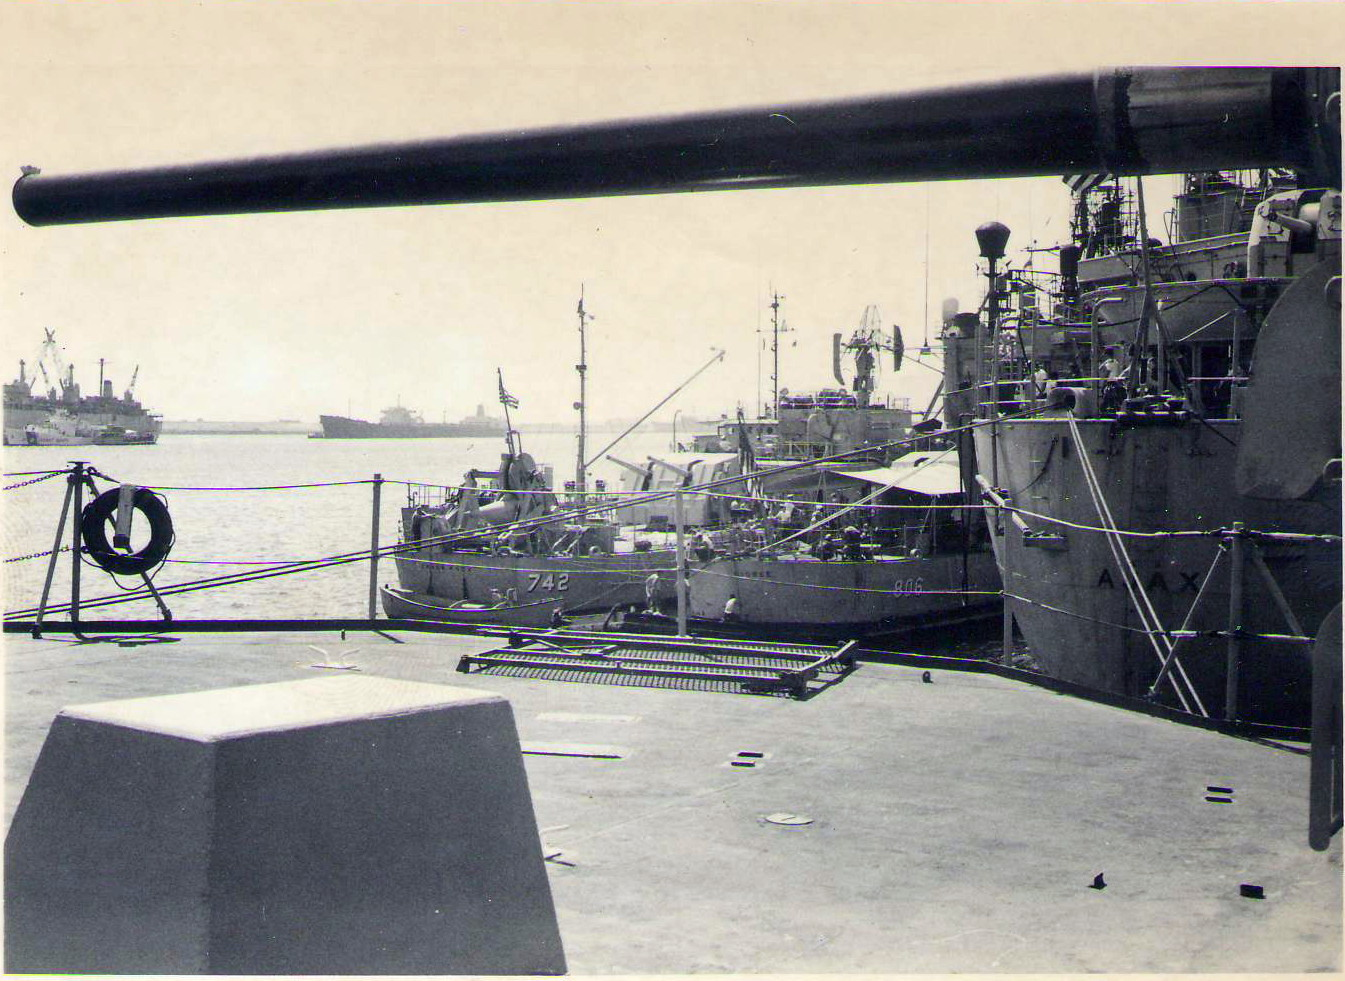 1969 HMAS Perth in Subic Bay